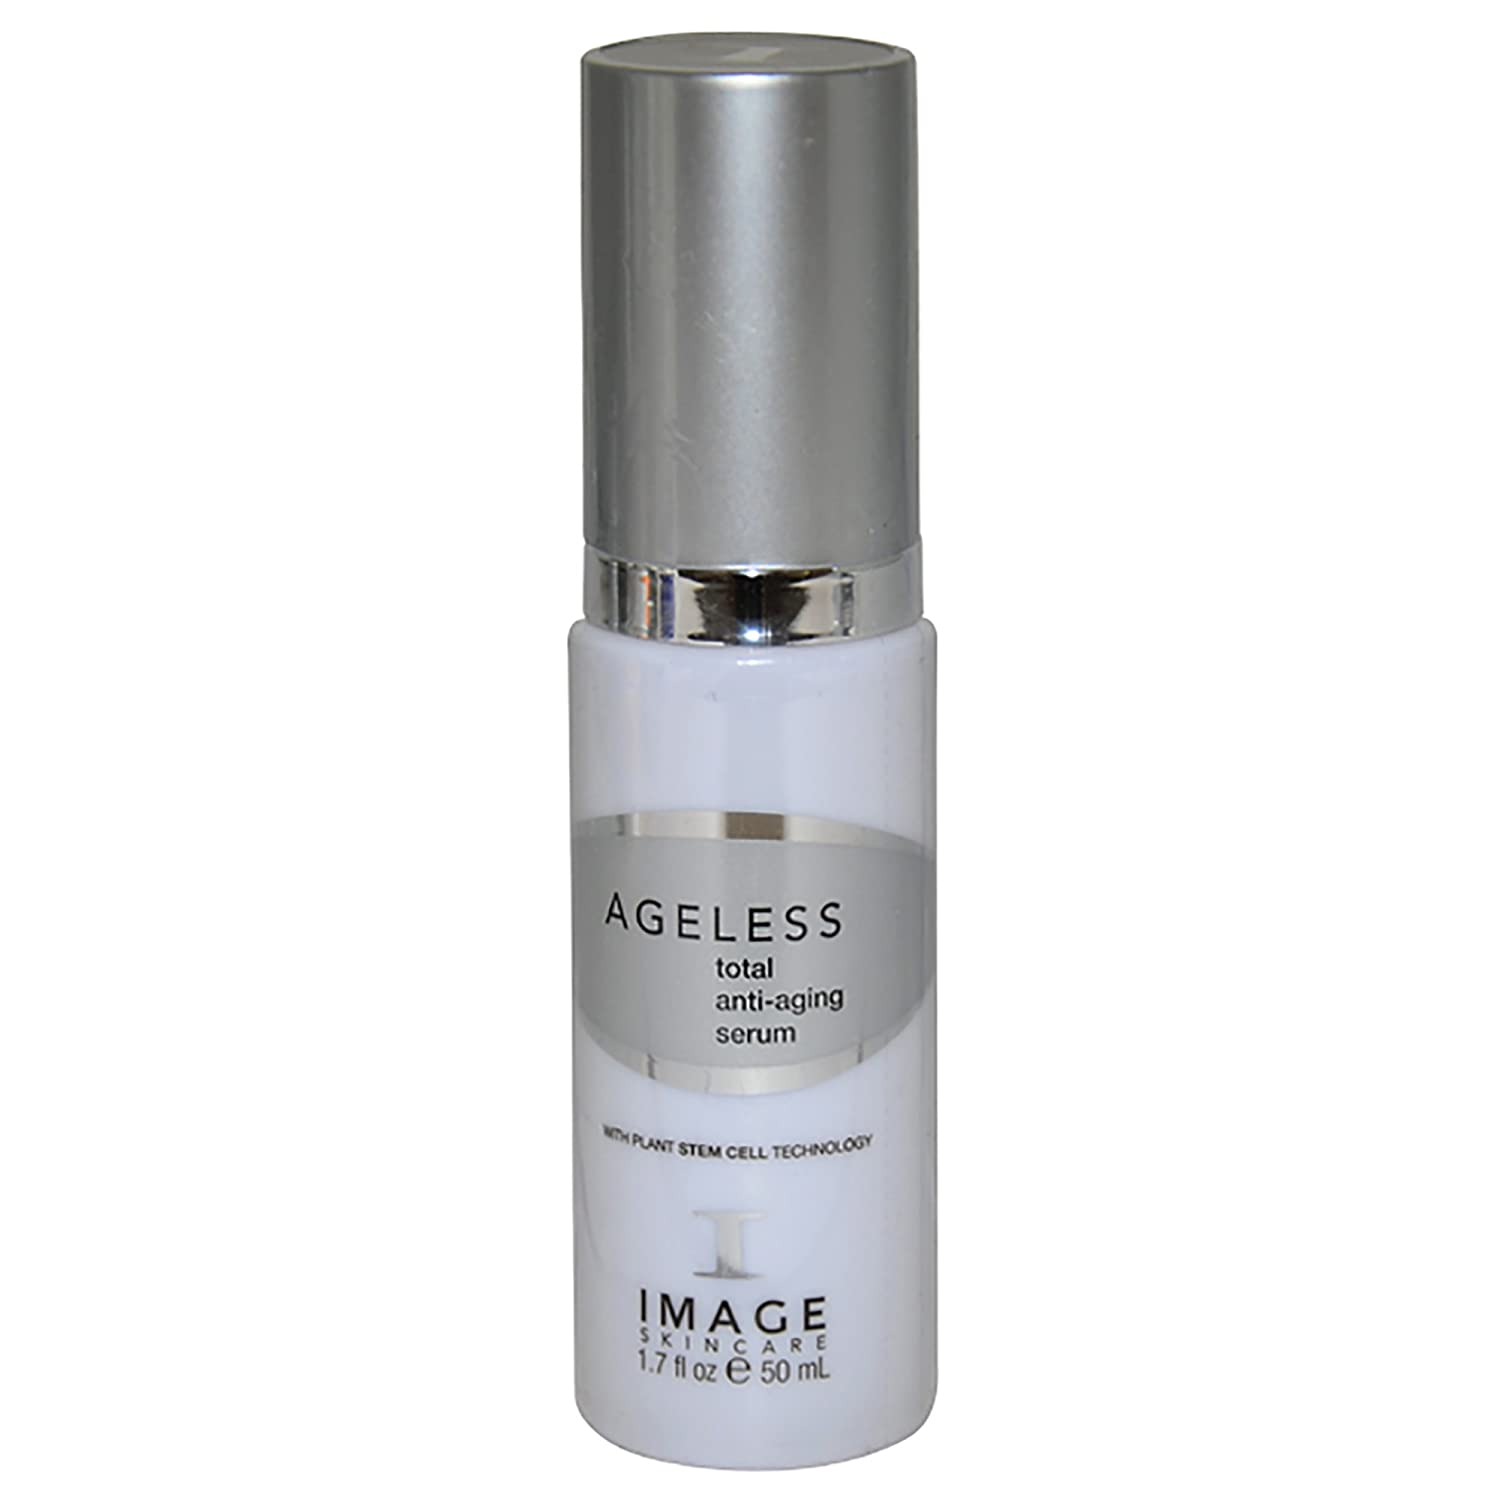 Image Skincare Ageless Total AntiAging Serum with VectorizeTechnology 1.7 Oz